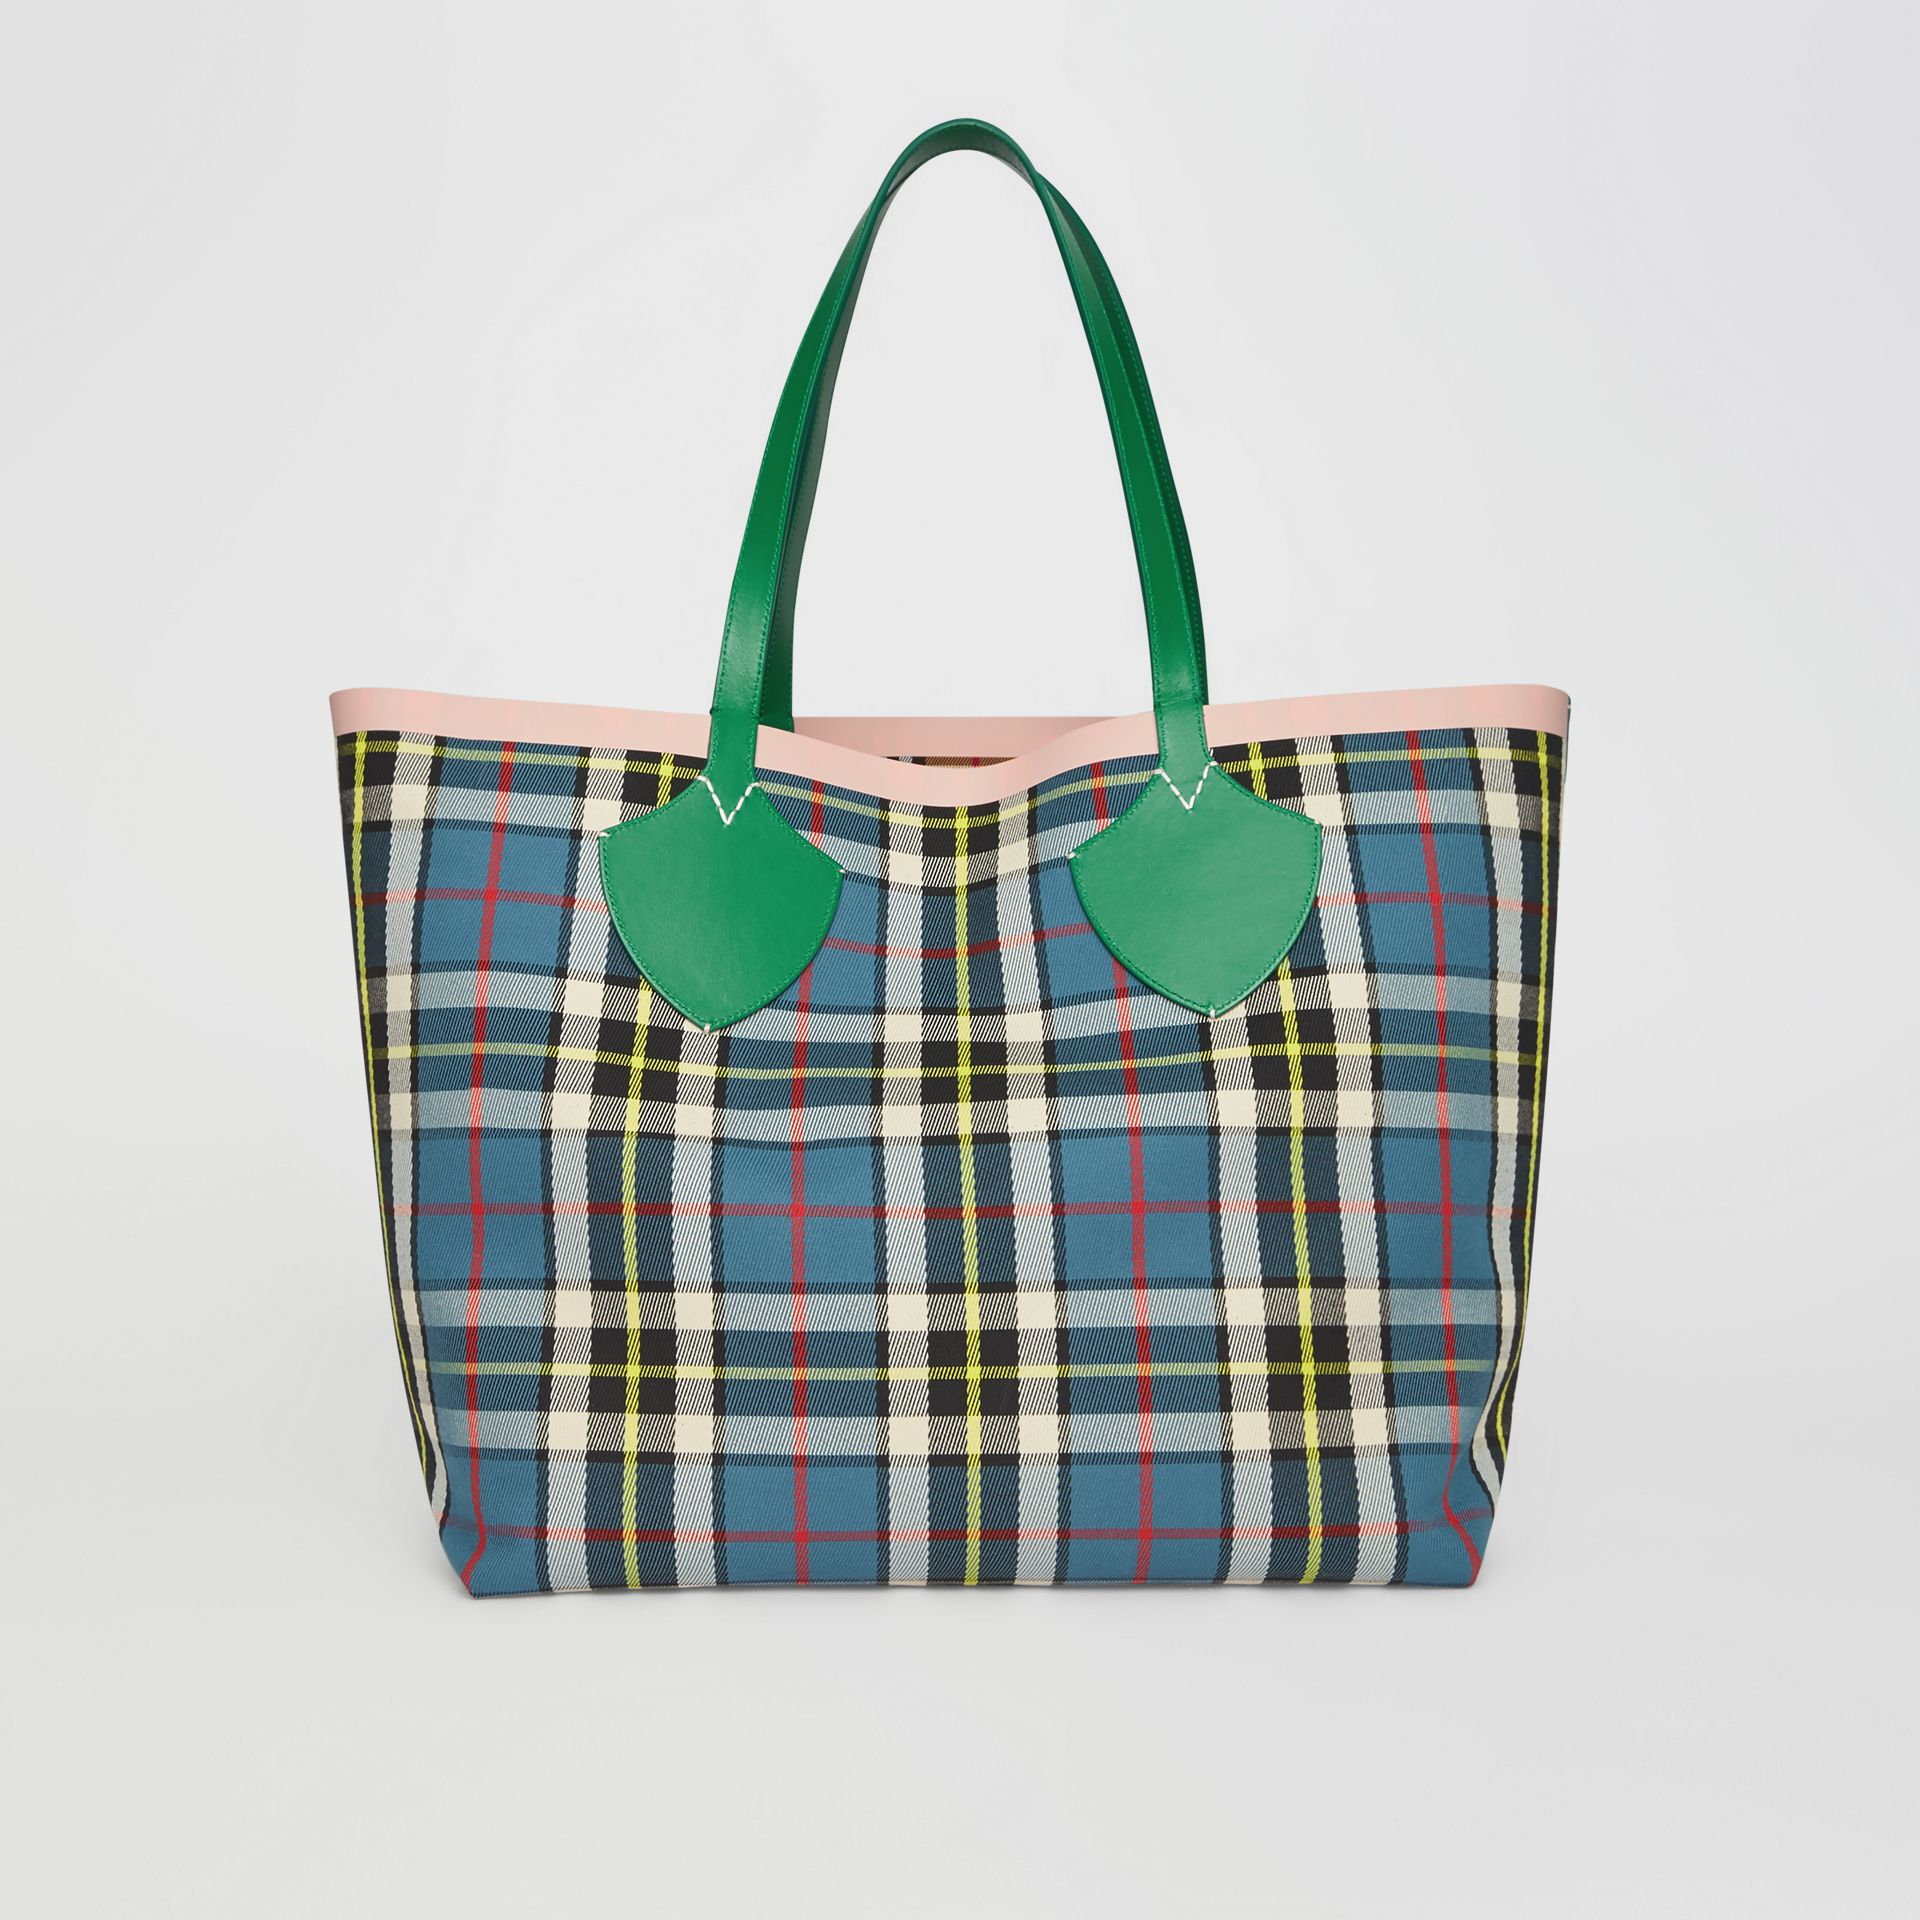 The Giant Reversible Tote in Vintage Check in Palm Green/pink Apricot - Women | Burberry Singapore - gallery image 9